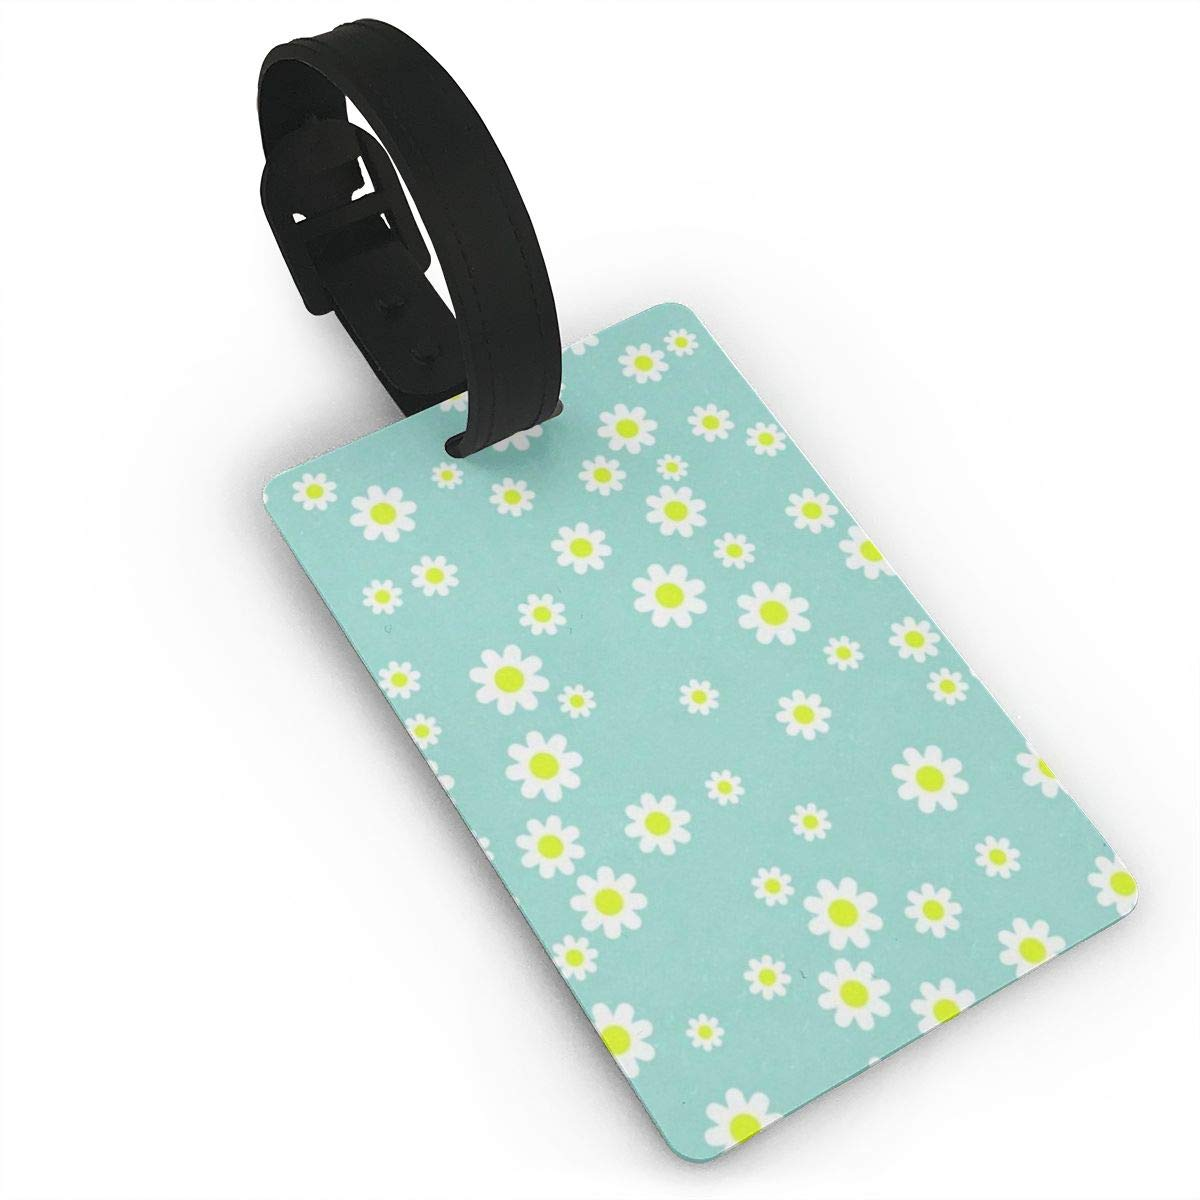 Luggage Tags Small Chrysanthemum Green Background Bag Tag for Travel 2 PCS